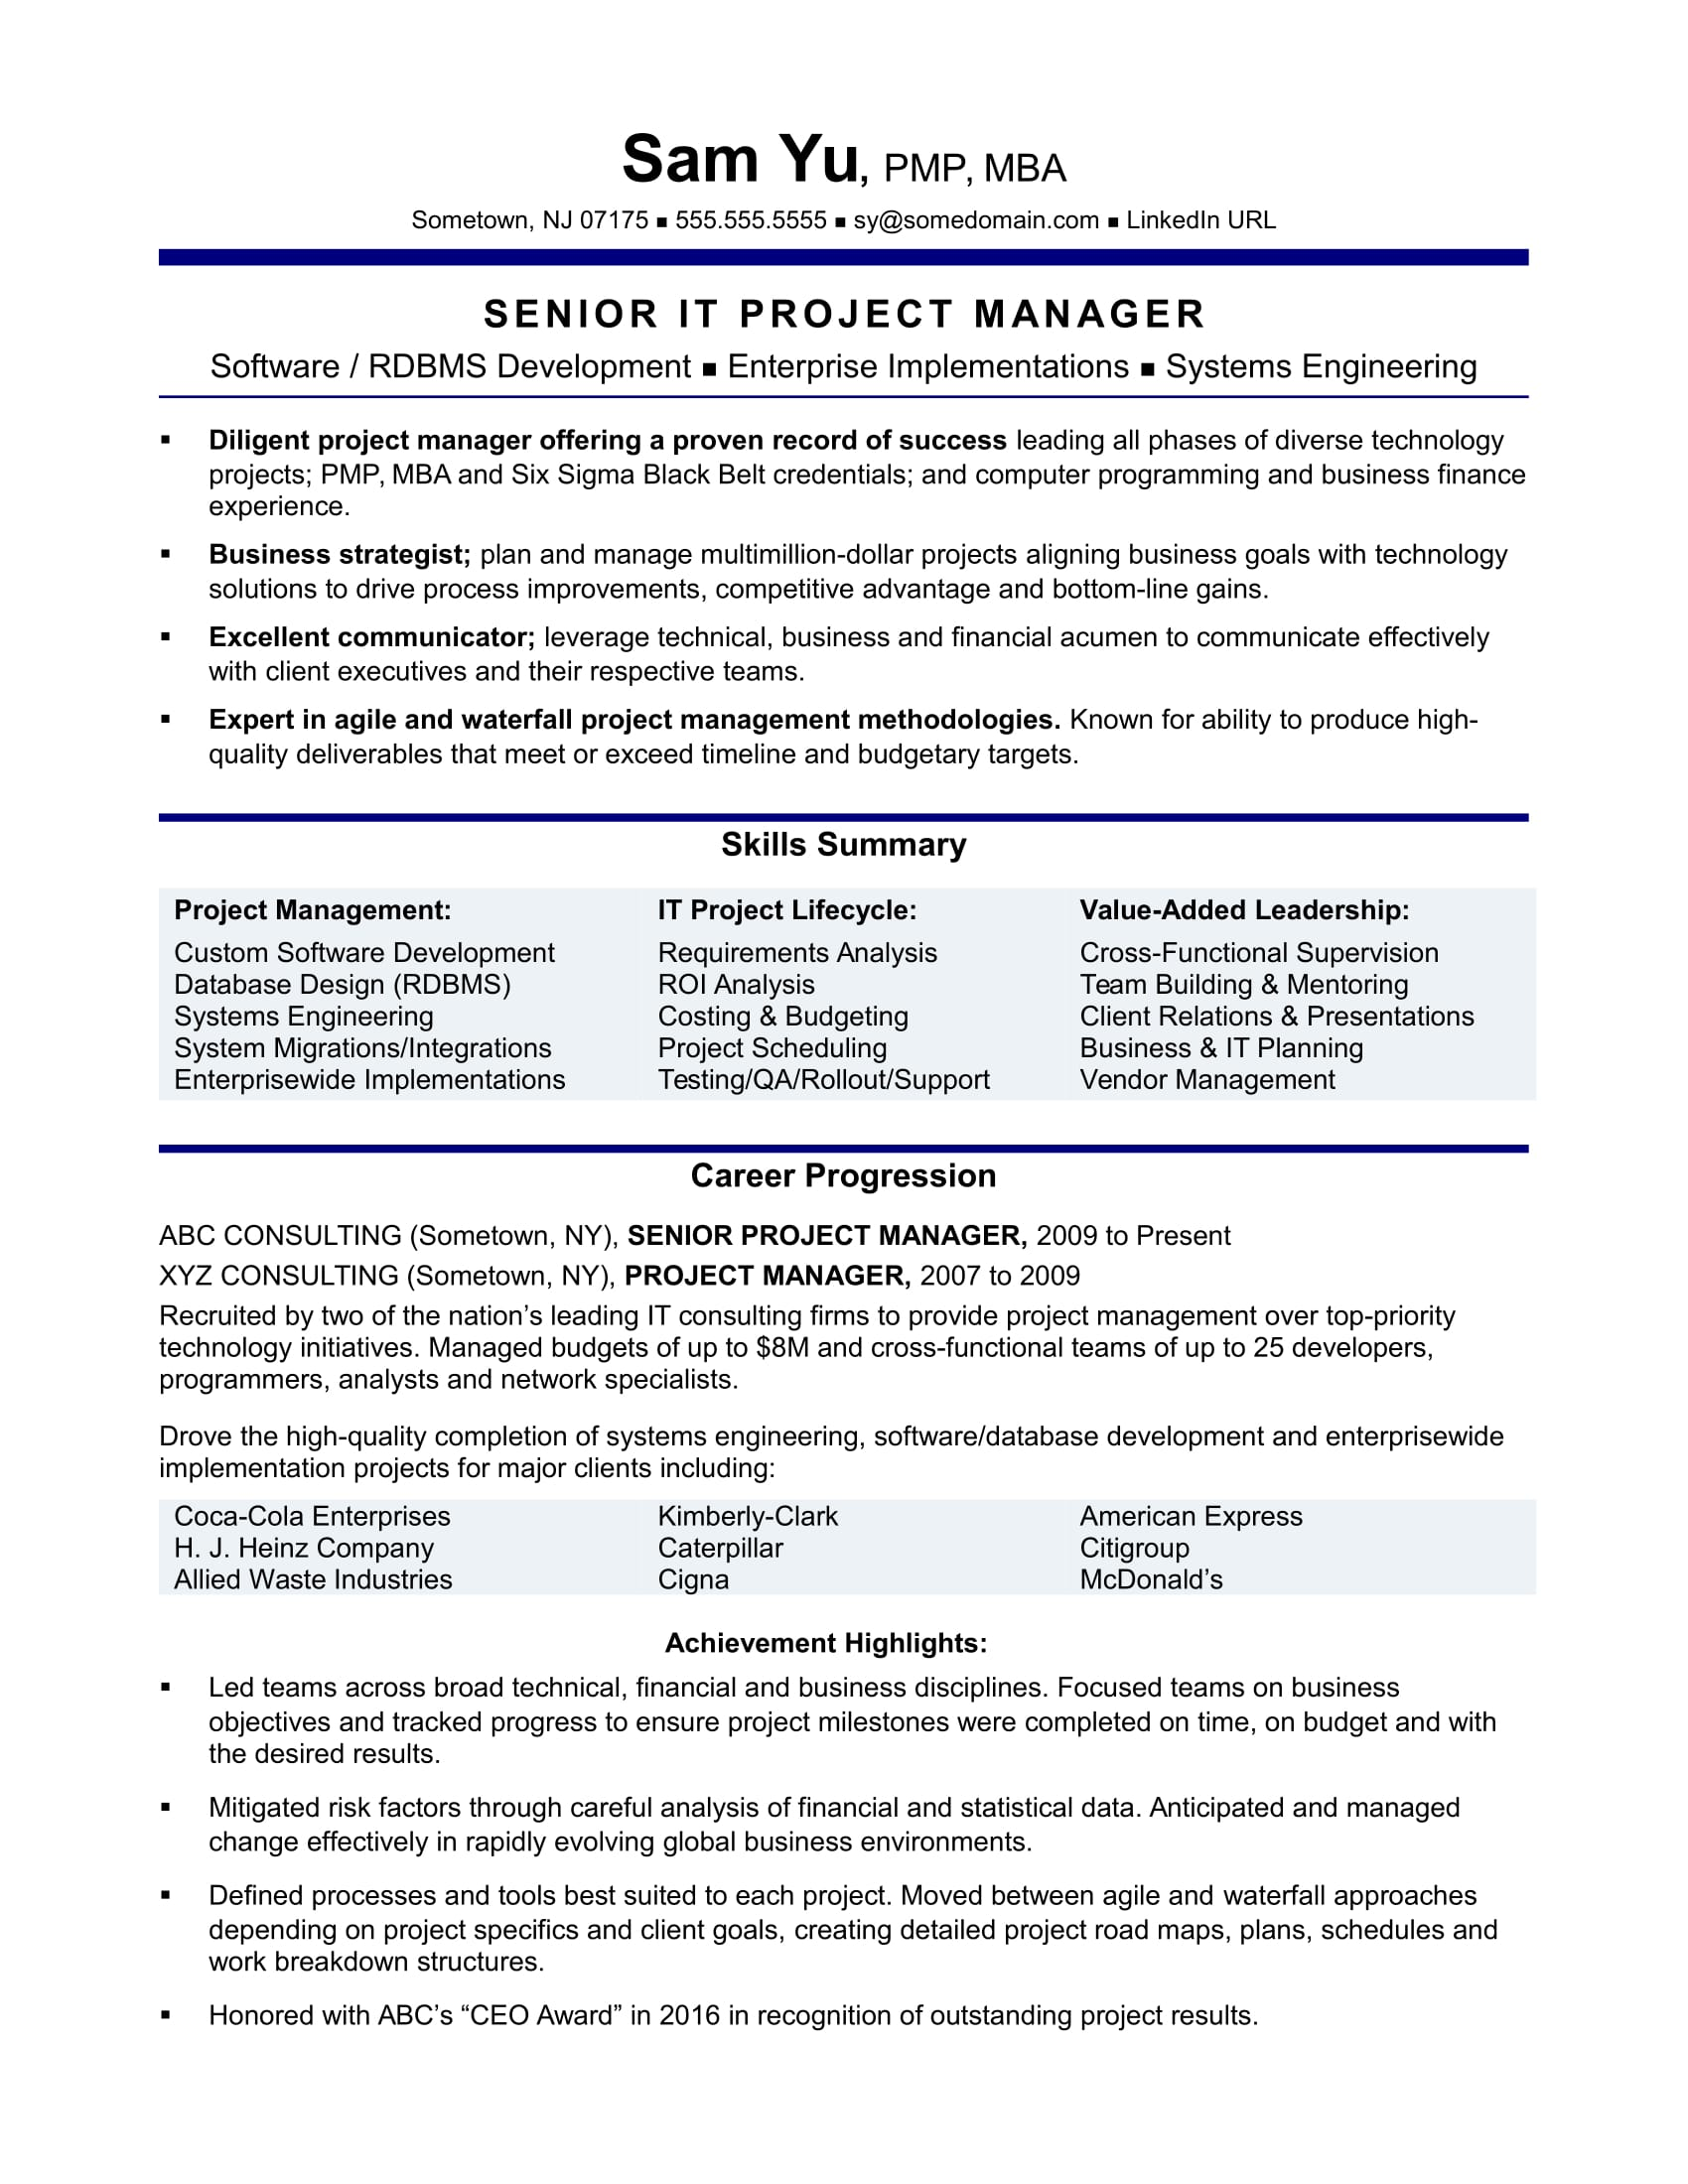 Wonderful Experienced IT Project Manager Resume Sample With It Manager Resume Sample